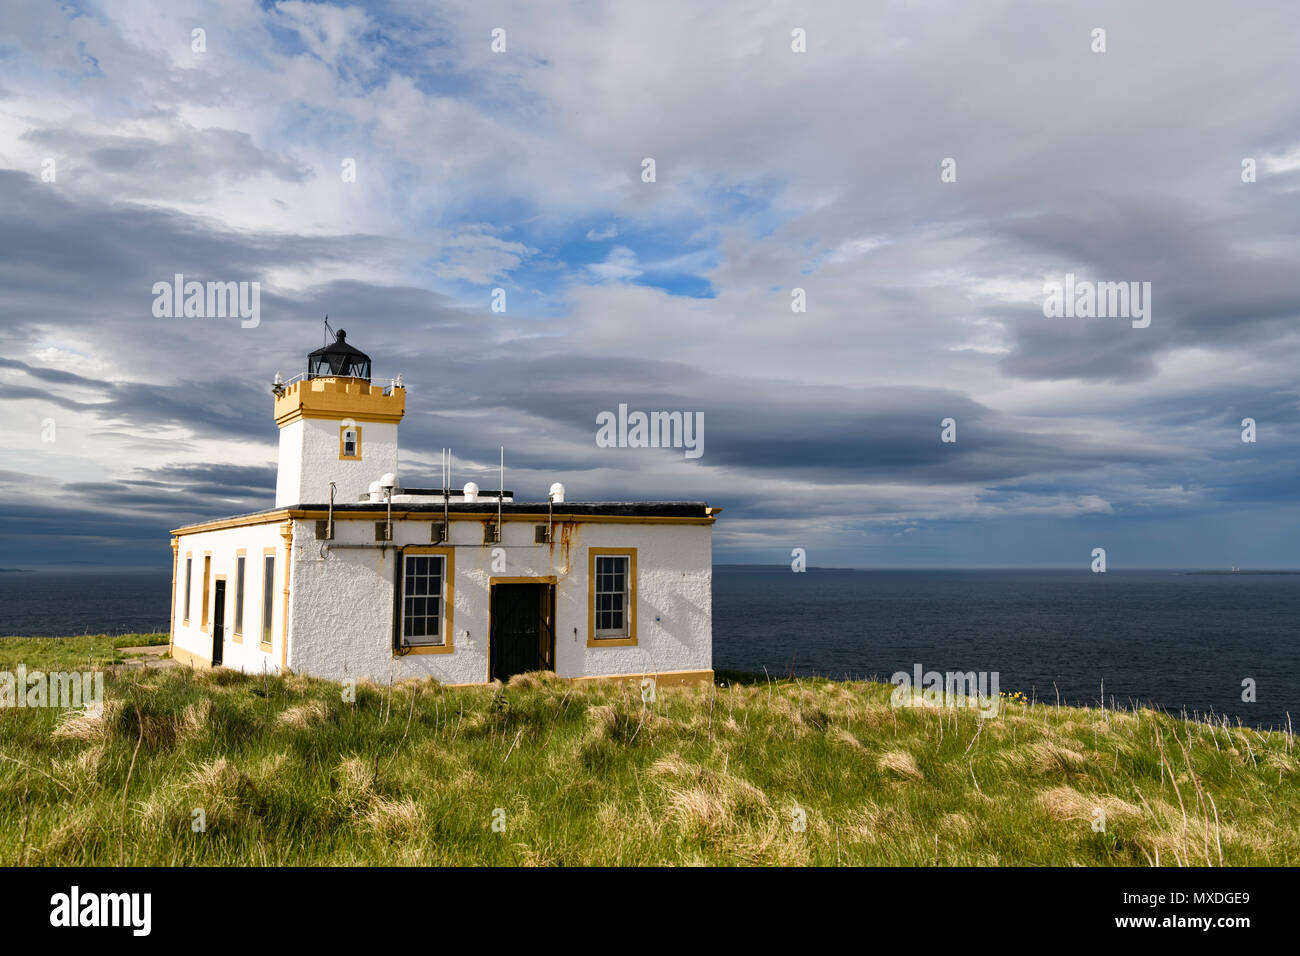 The Lighthouse at Ducansby Head in Caithness, Scotland. The farthest port by road from Lands End on the British mainland. 20 May 2018 - Stock Image